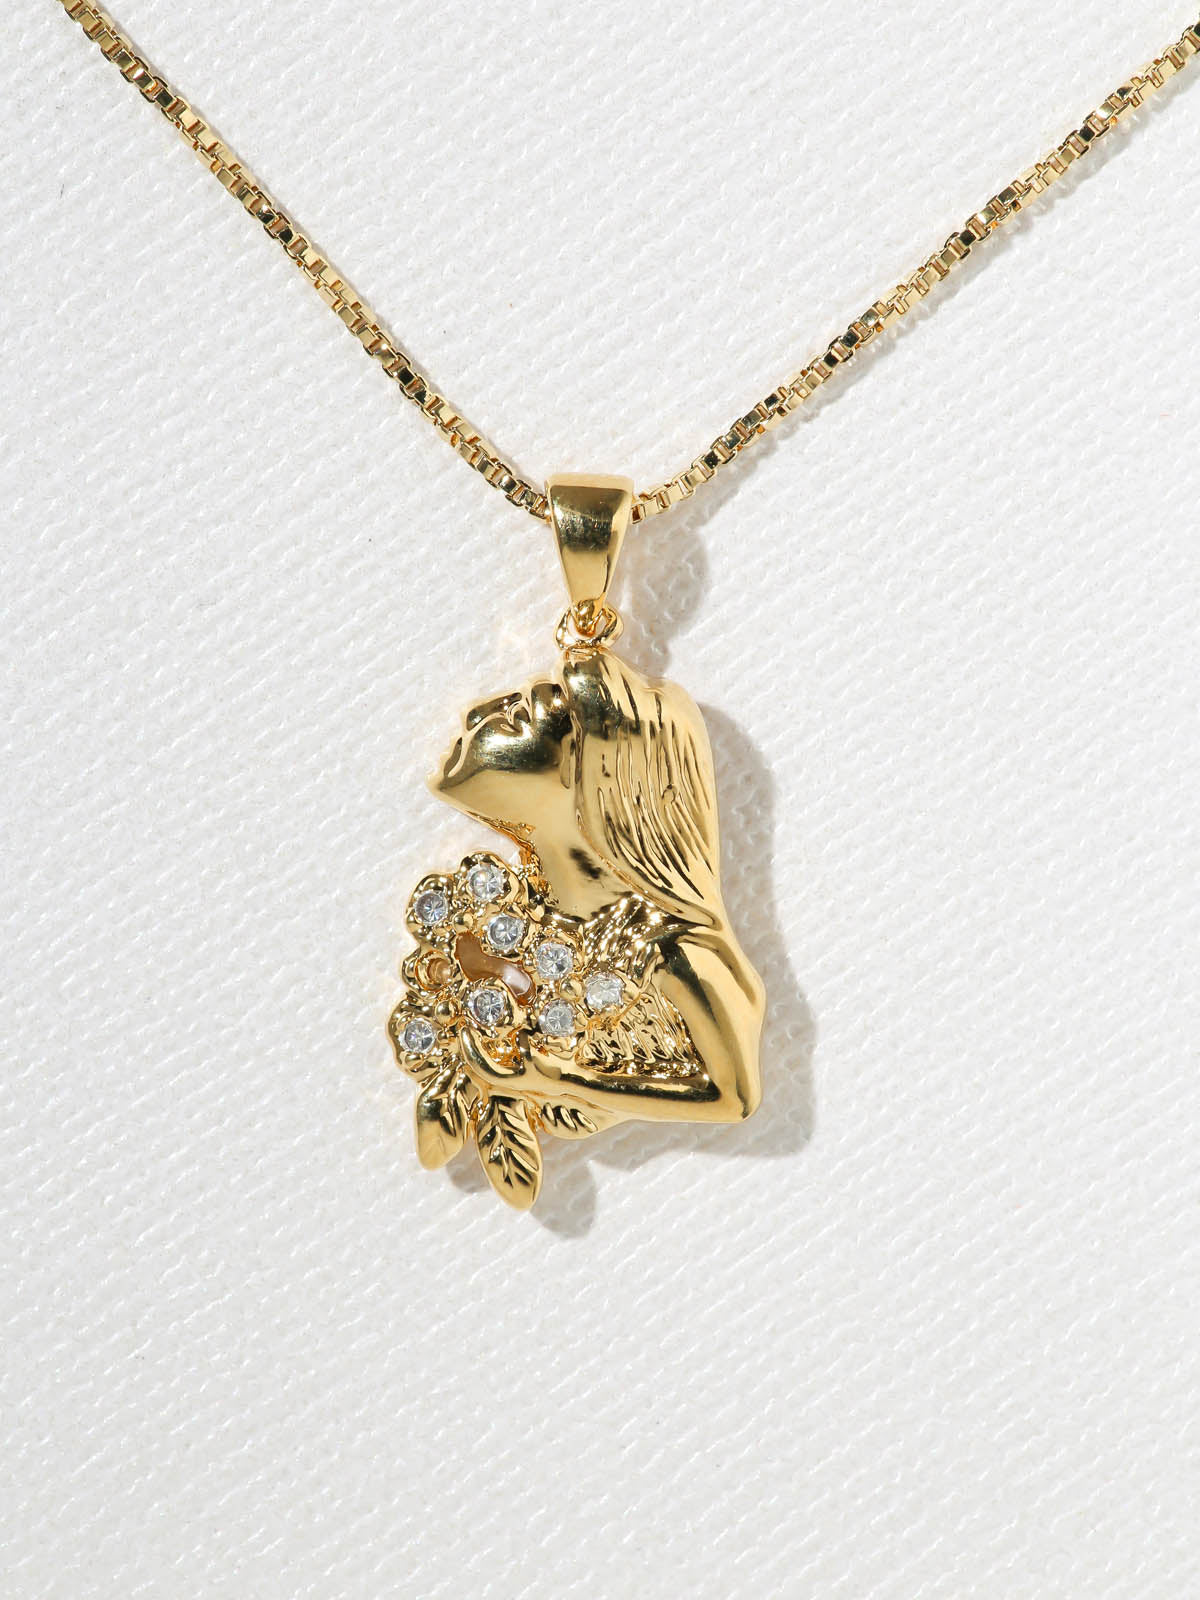 The Star Sign Necklaces Virgo-Sagittarius